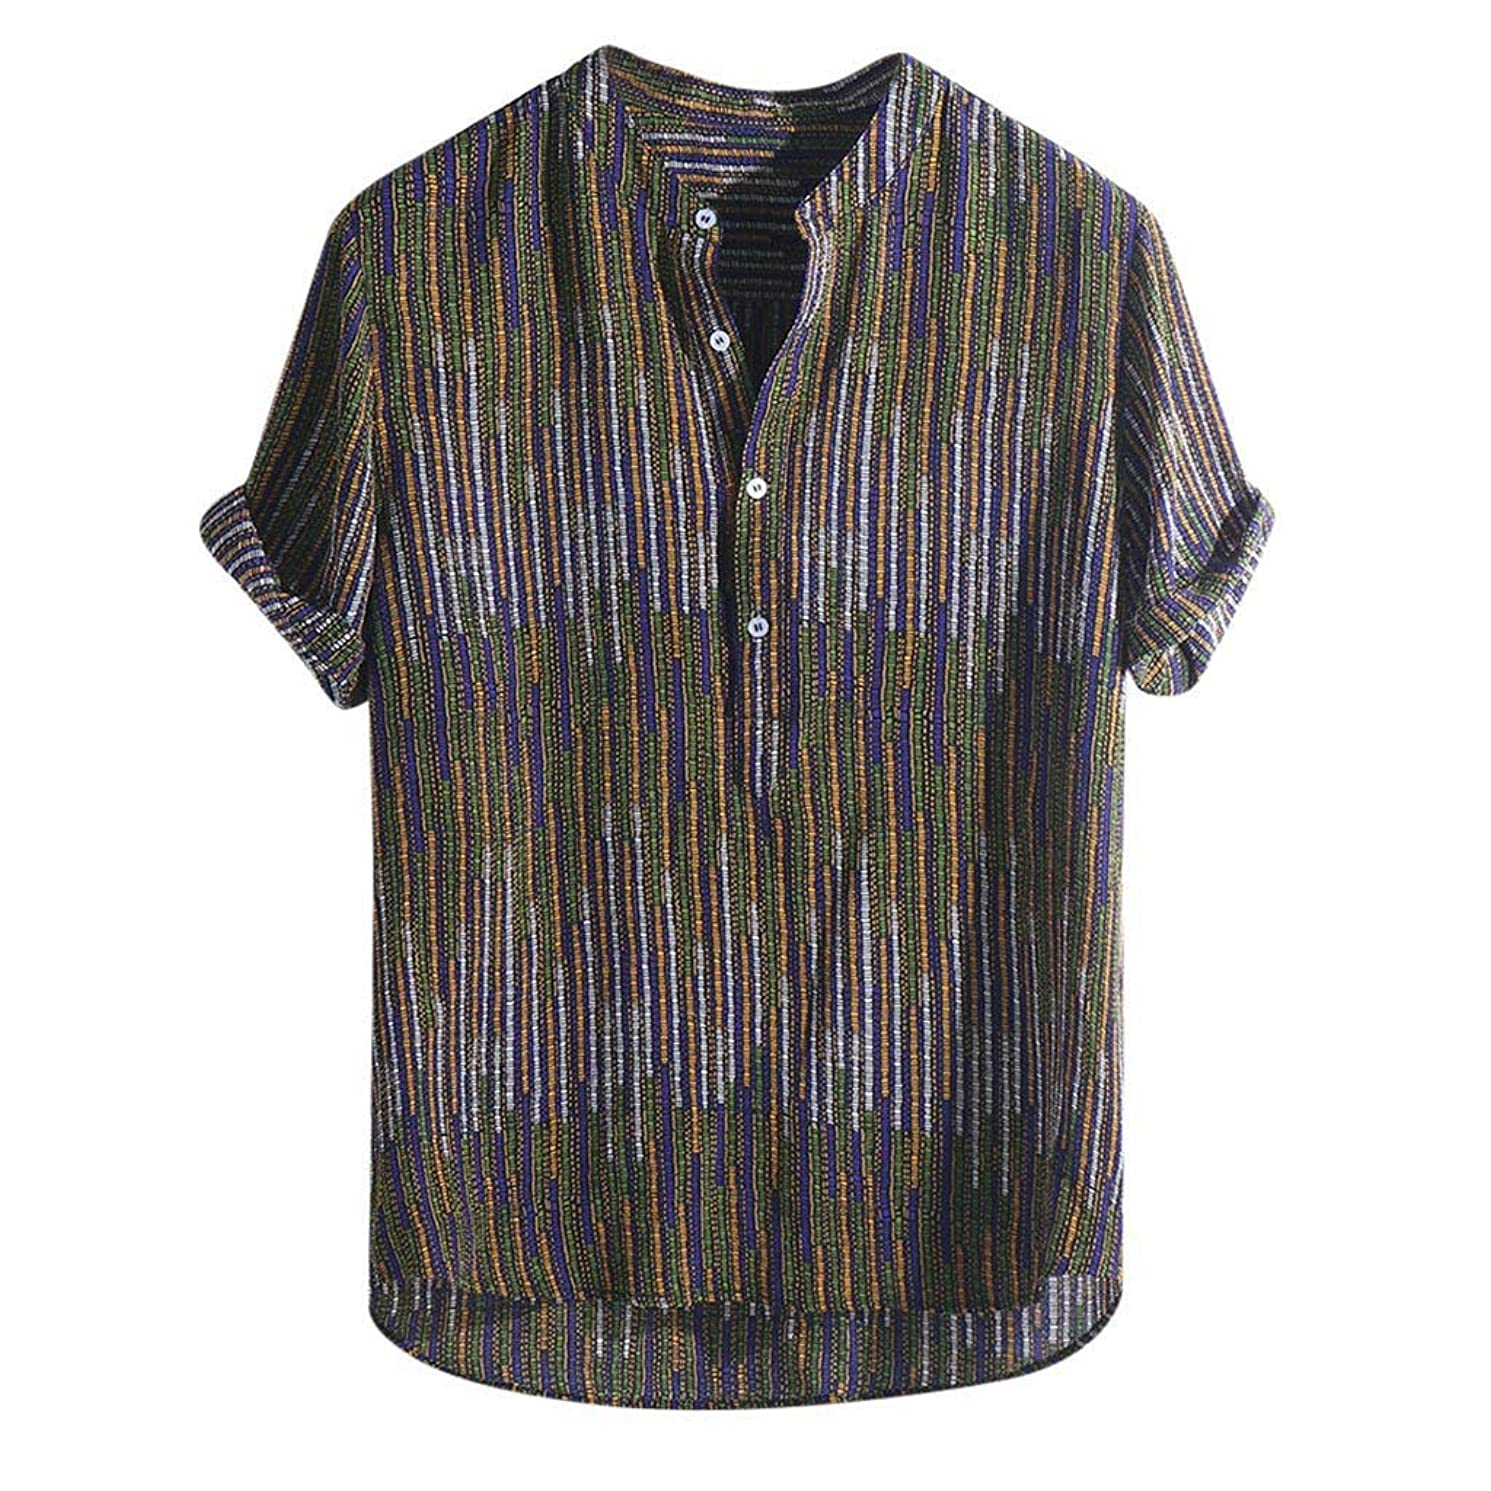 Xiarookp Men's Short Sleeve Shirt Fashion Ethnic Printed Stand Collar Henley T-Shirts Top Blouses